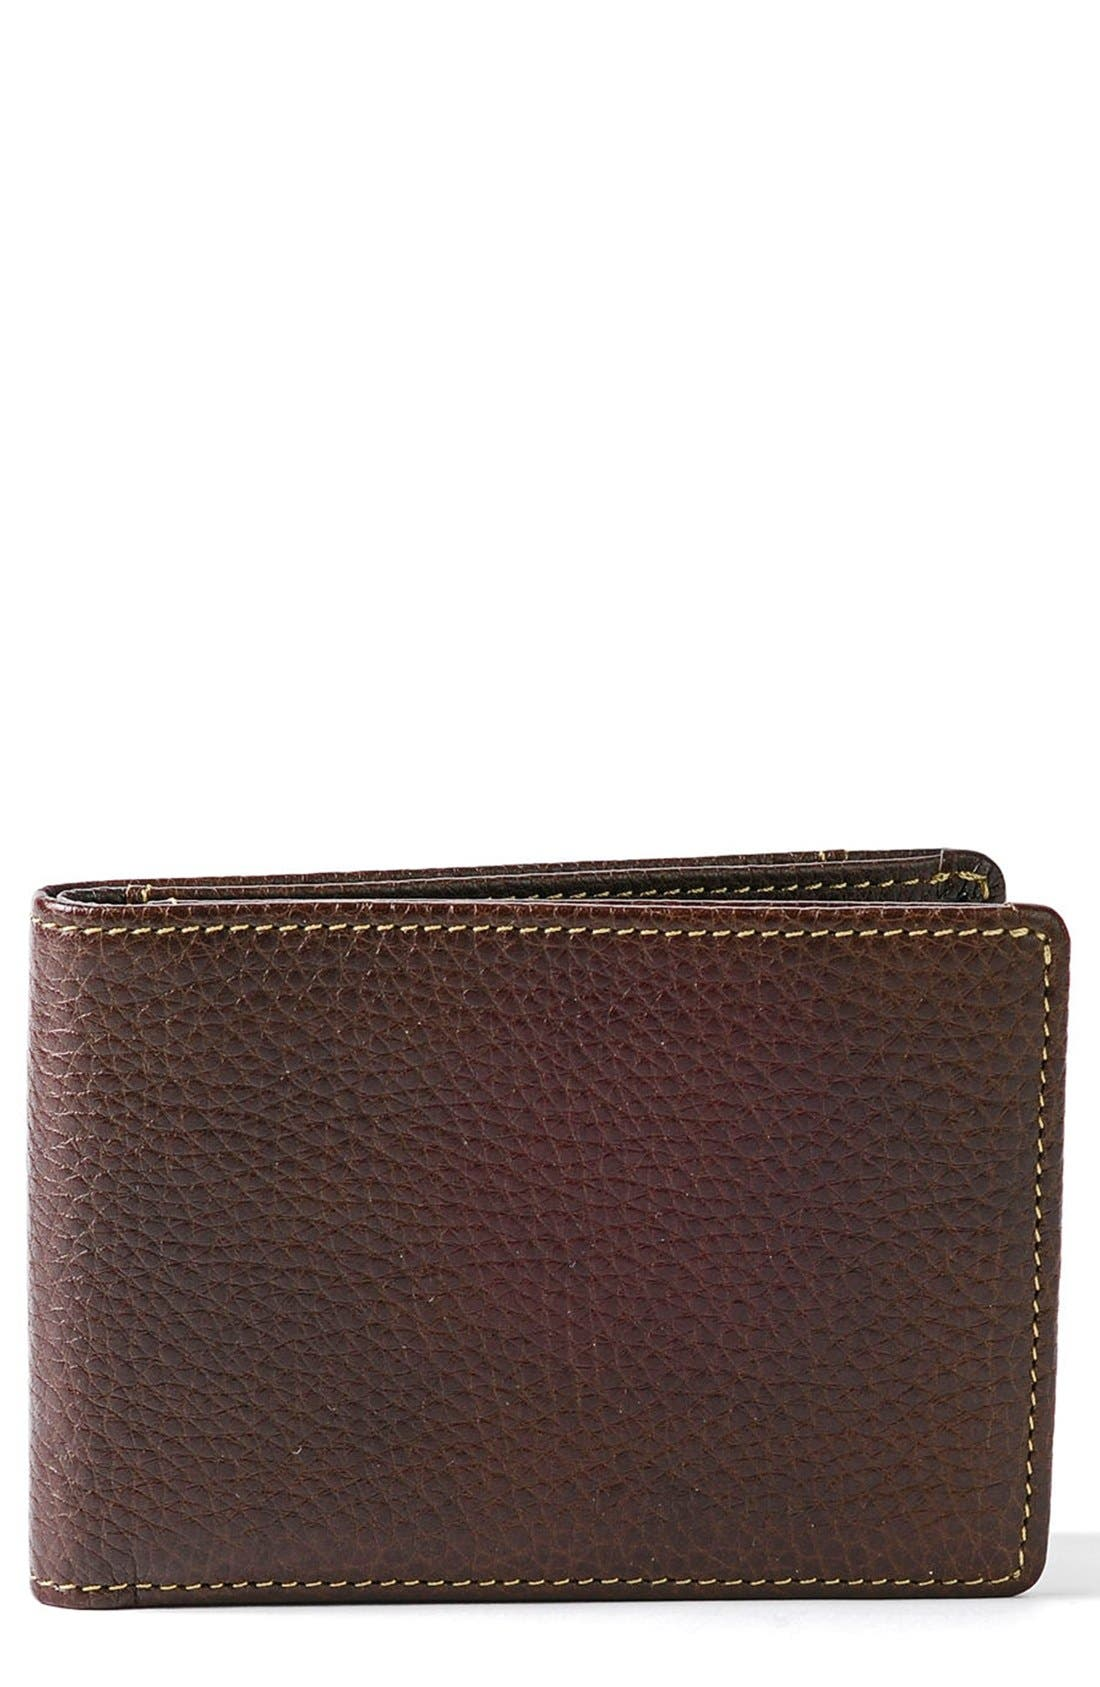 'Tyler' RFID Slimster Wallet,                             Main thumbnail 1, color,                             Coffee